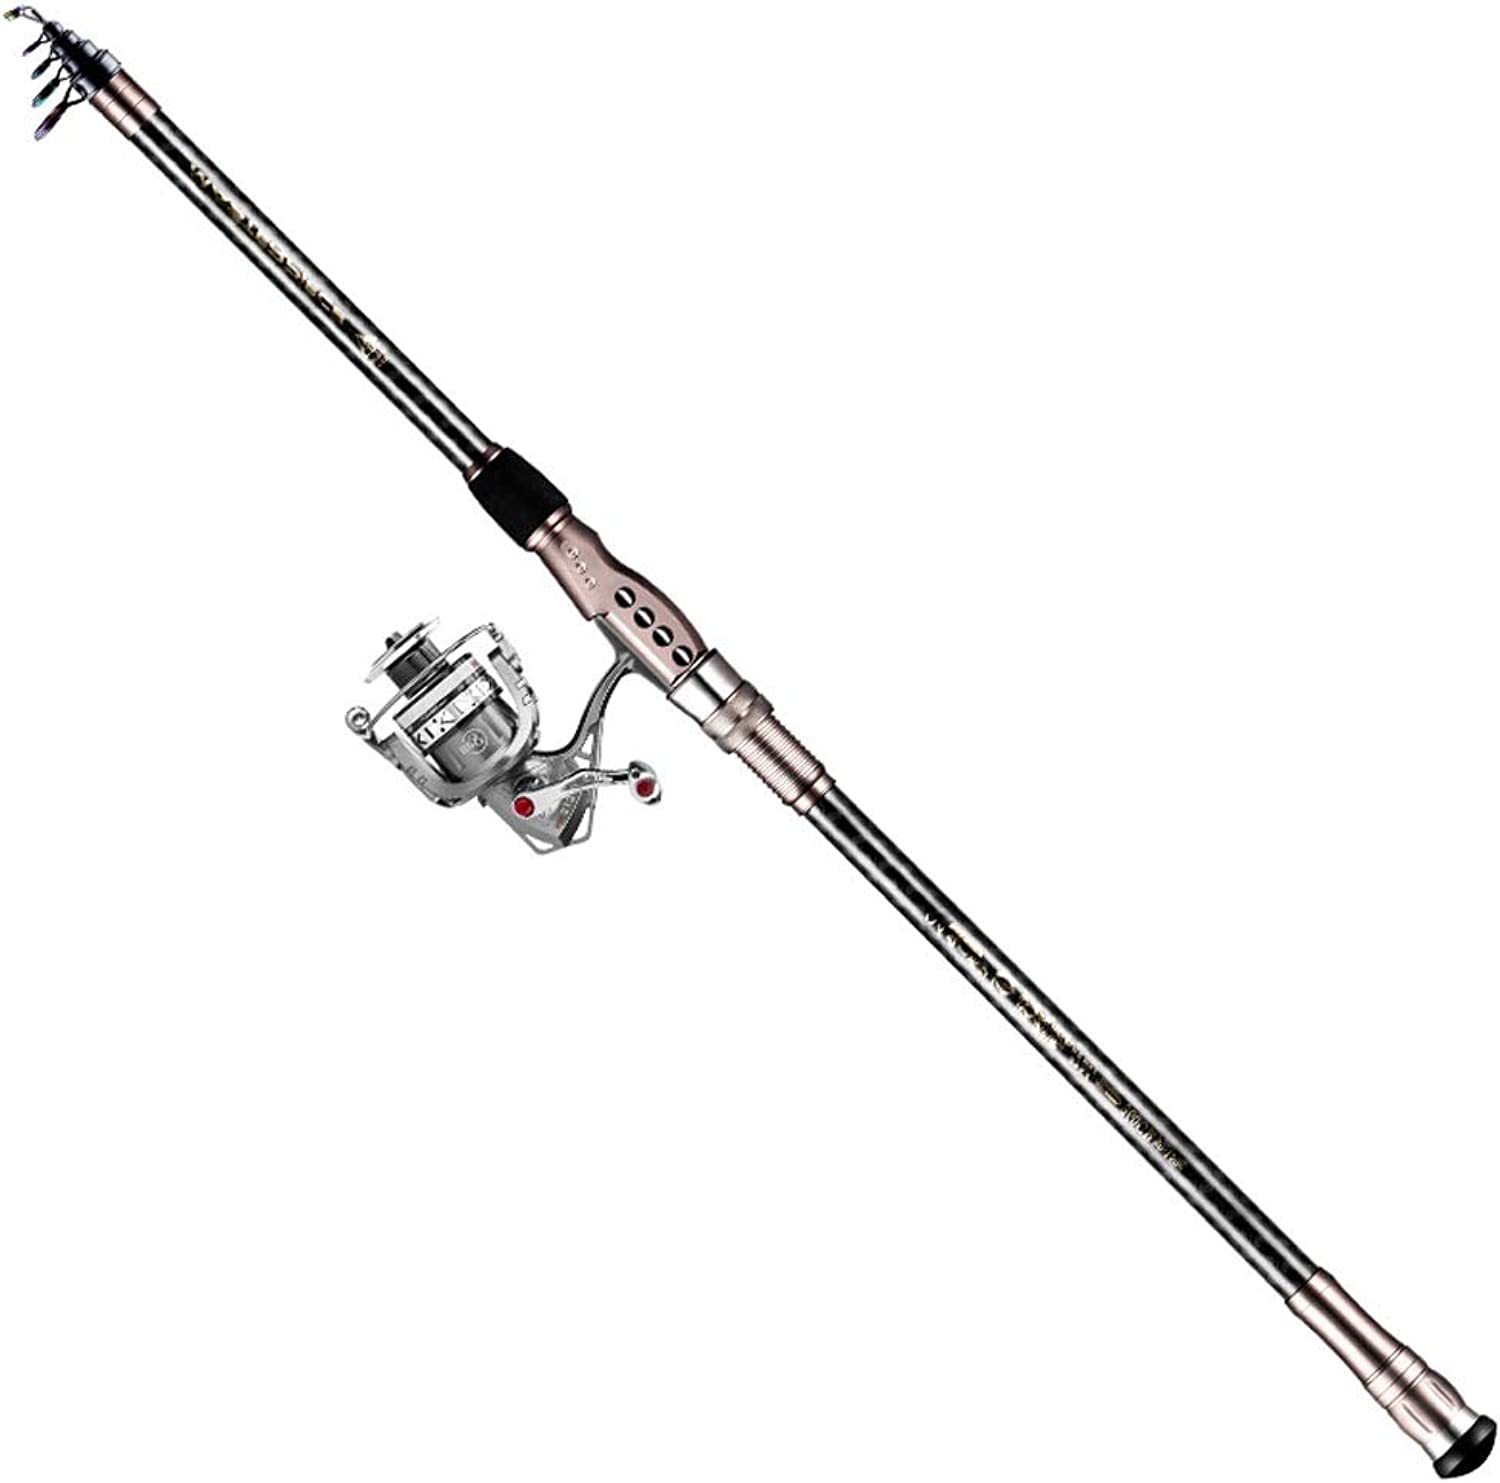 ZSLLO Telescopic Fishing Rod Stainless Steel Assembly with Fishing Reel Combination Fishing Rod Spinning Rod Fishing Tackle Fishing Rod Freshwater Fishing (Size   270cm 8.8in)